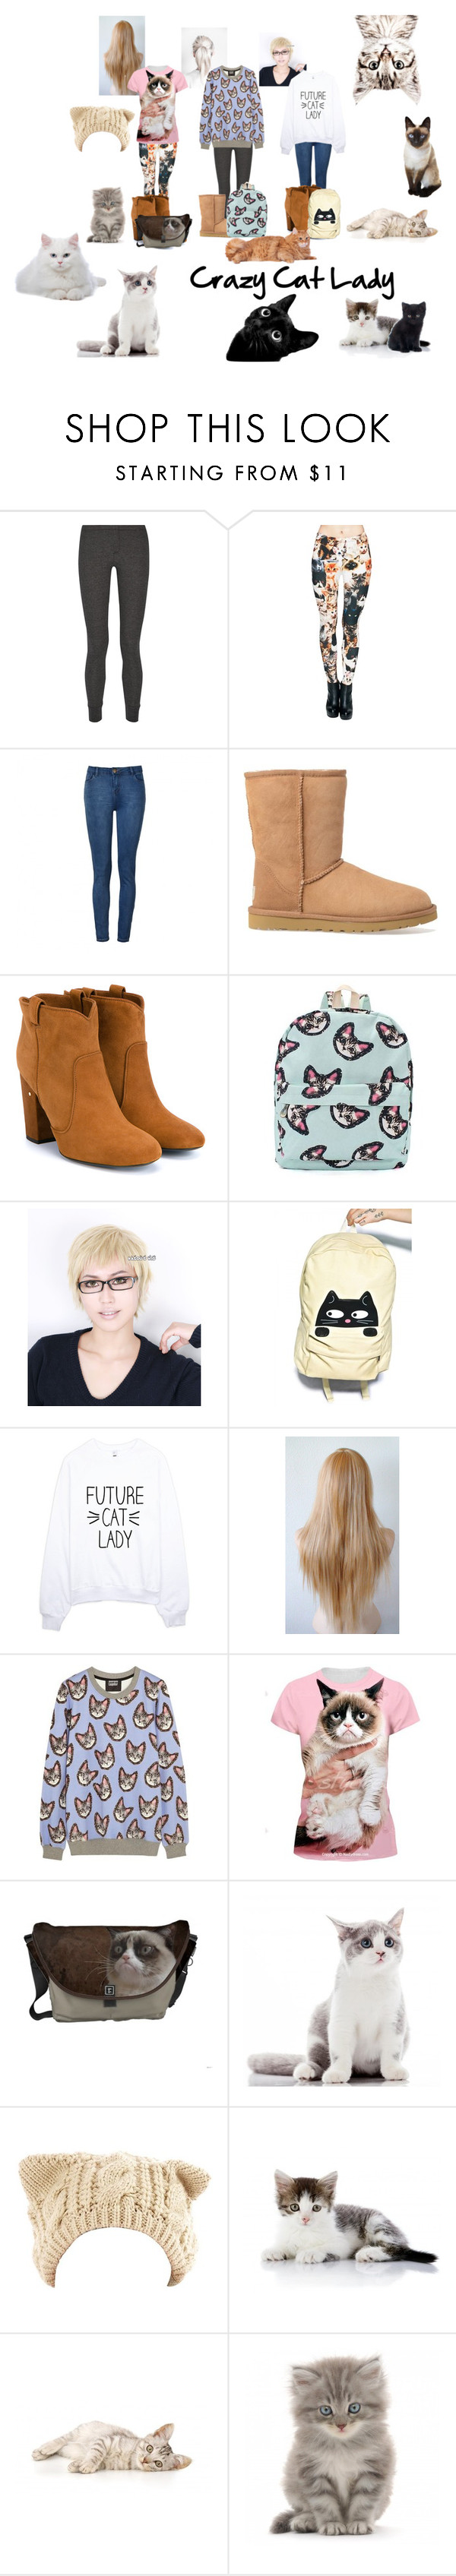 """Crazy Cat Lady"" by eos-anderson ❤ liked on Polyvore featuring Splendid, Ally Fashion, UGG Australia, Laurence Dacade, Comeco, Eloqueen, women's clothing, women, female and woman"